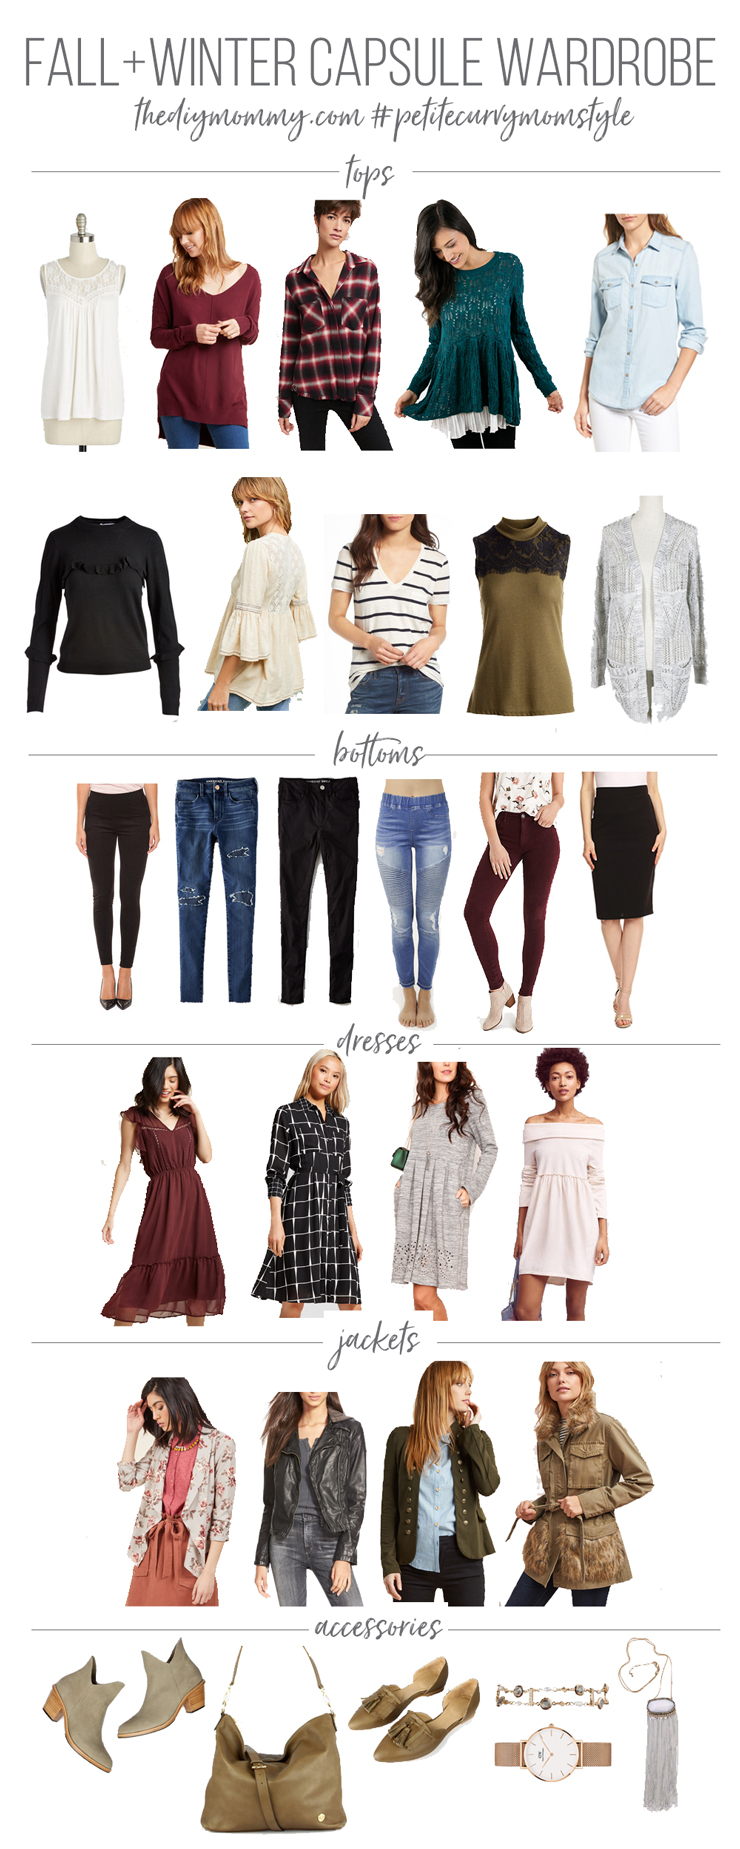 2017 Fall & Winter Petite Curvy Mom Style Capsule Wardrobe